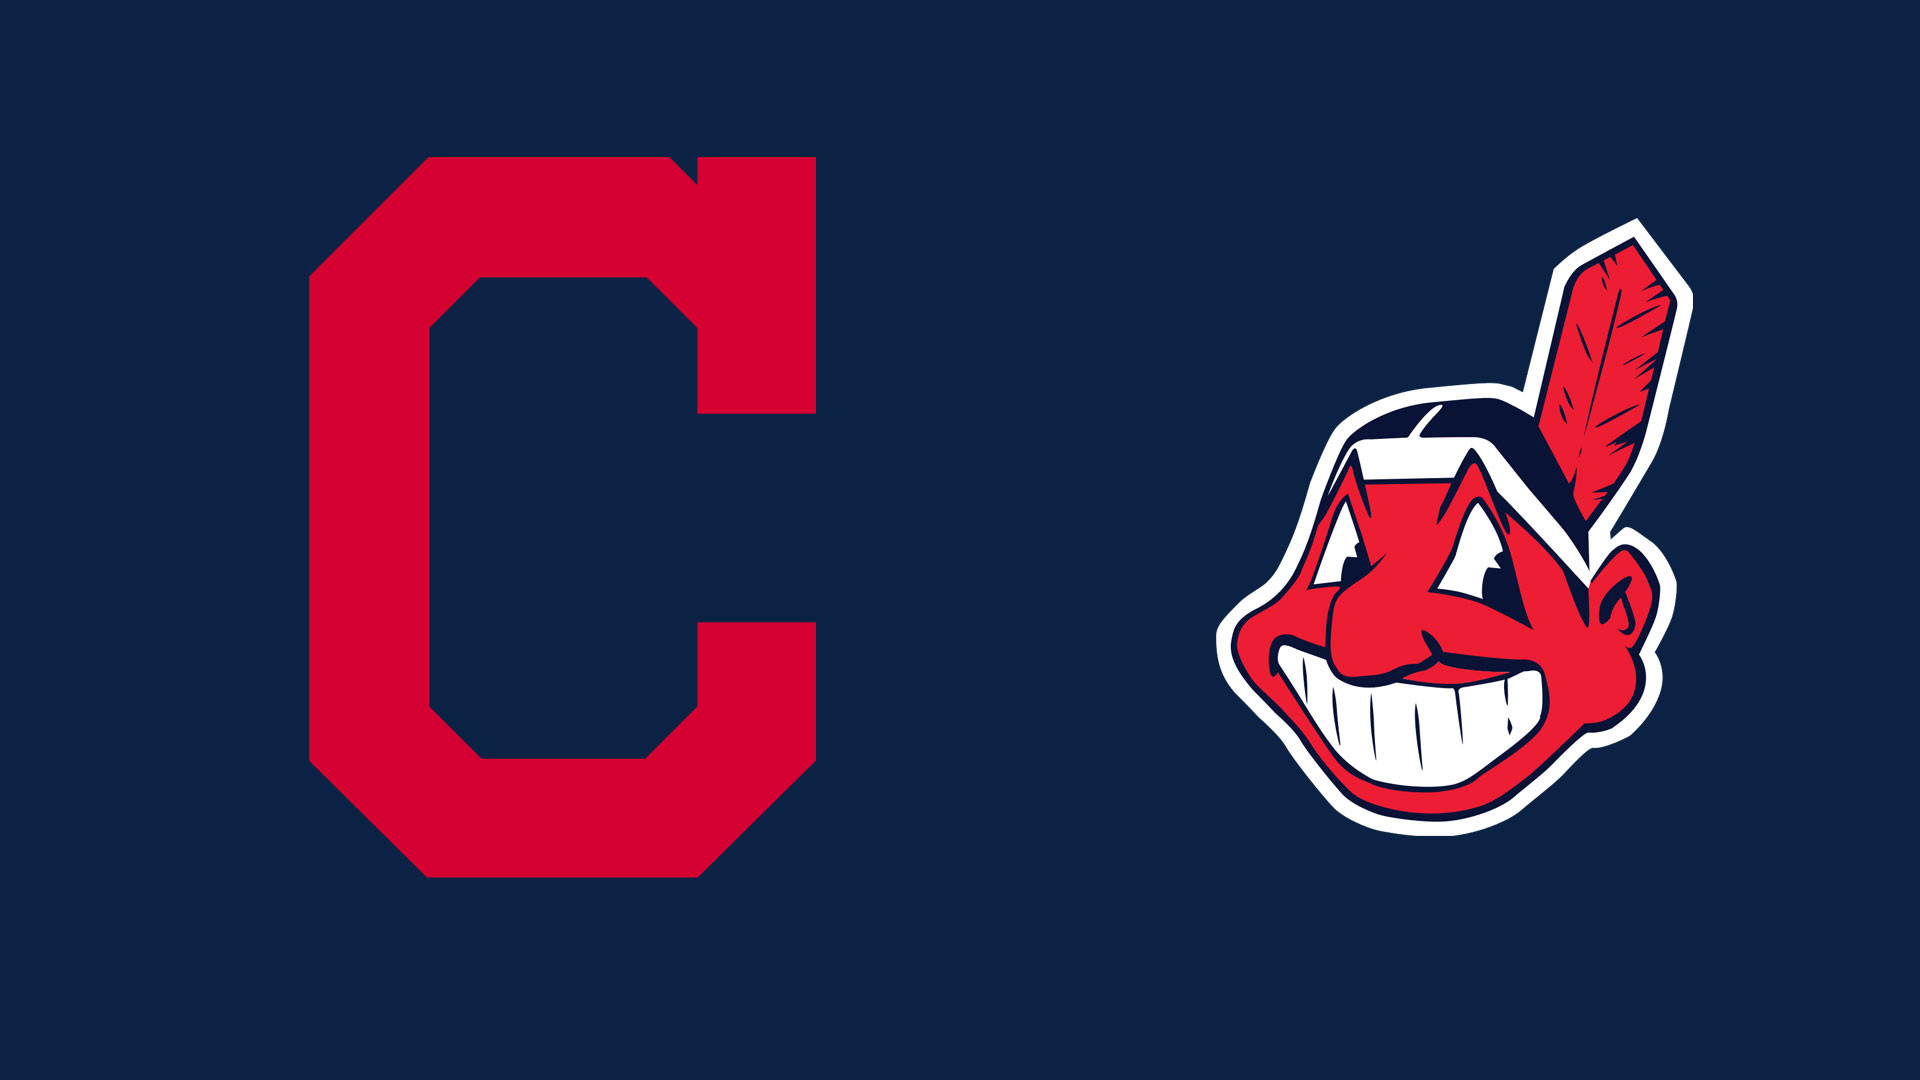 Mlb wallpaper 67 pictures 1920x1080 mlb cleveland indians logo 1920x1080 wallpaper download chicago biocorpaavc Choice Image